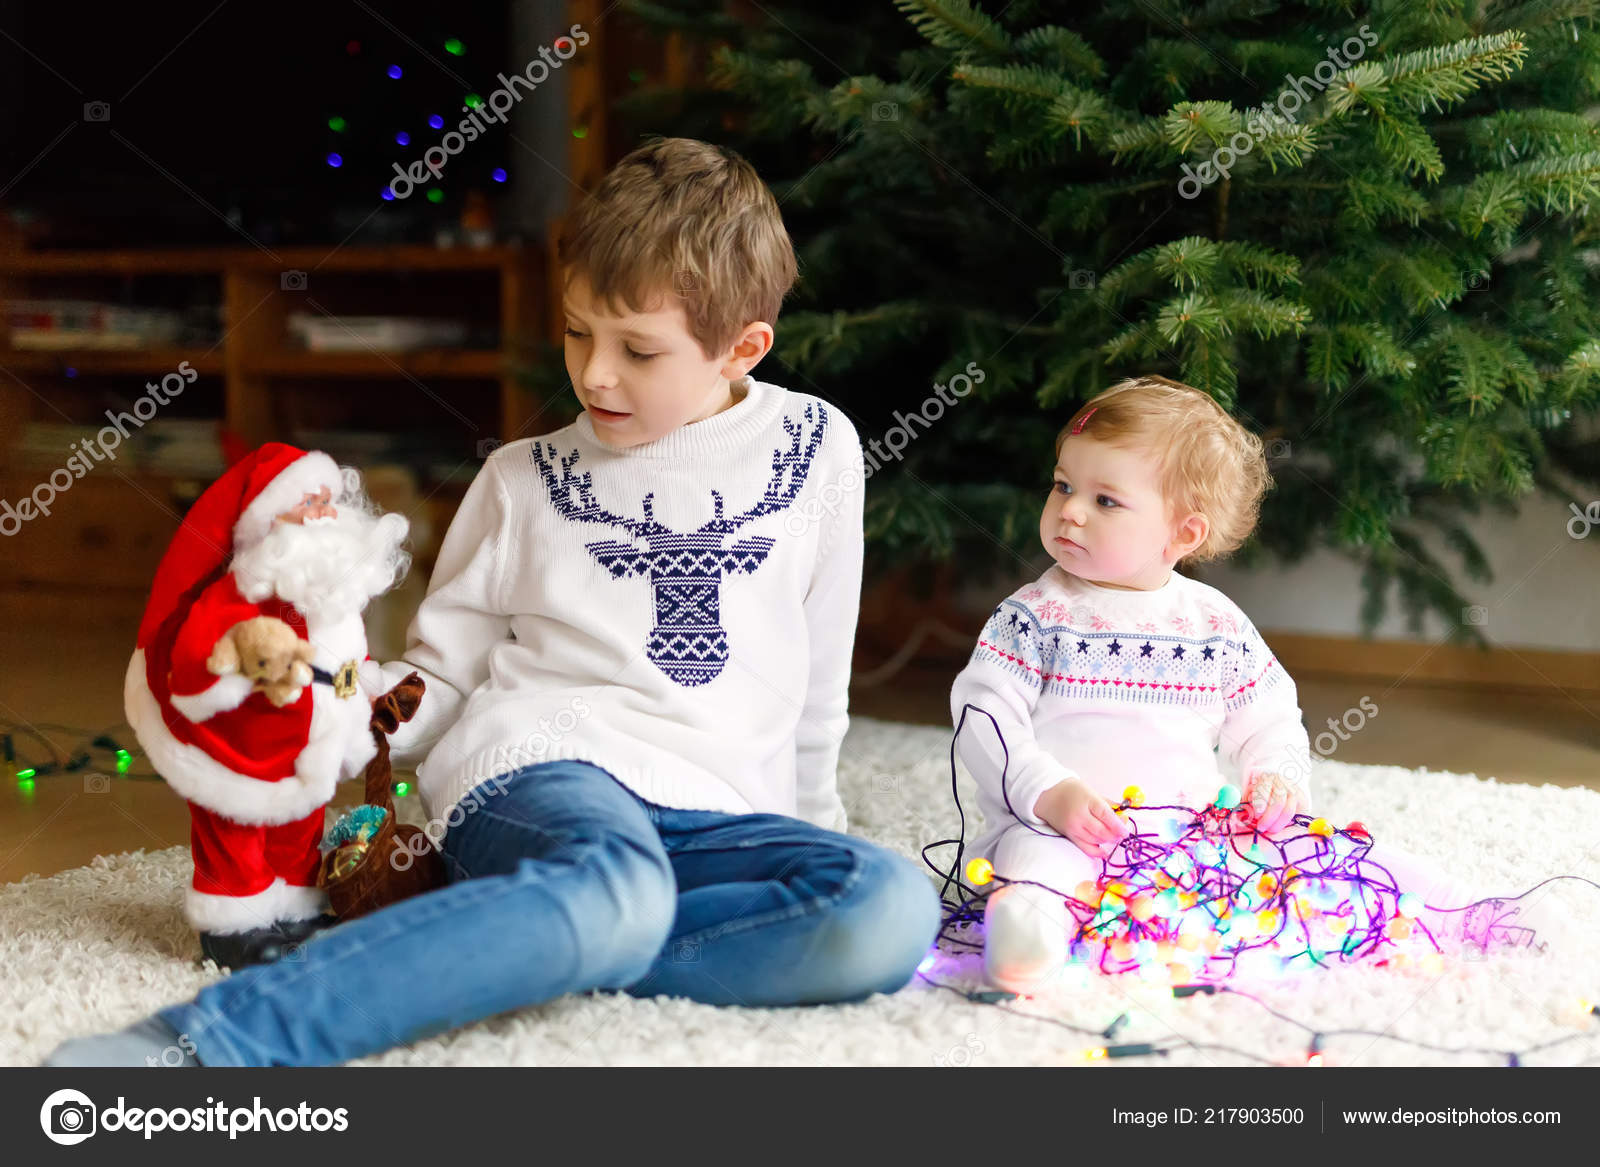 26a760c03 Adorable baby girl and brother holding colorful lights garland and toy  Santa Claus in cute hands. Little children, kid boy and toddler girl in  festive ...